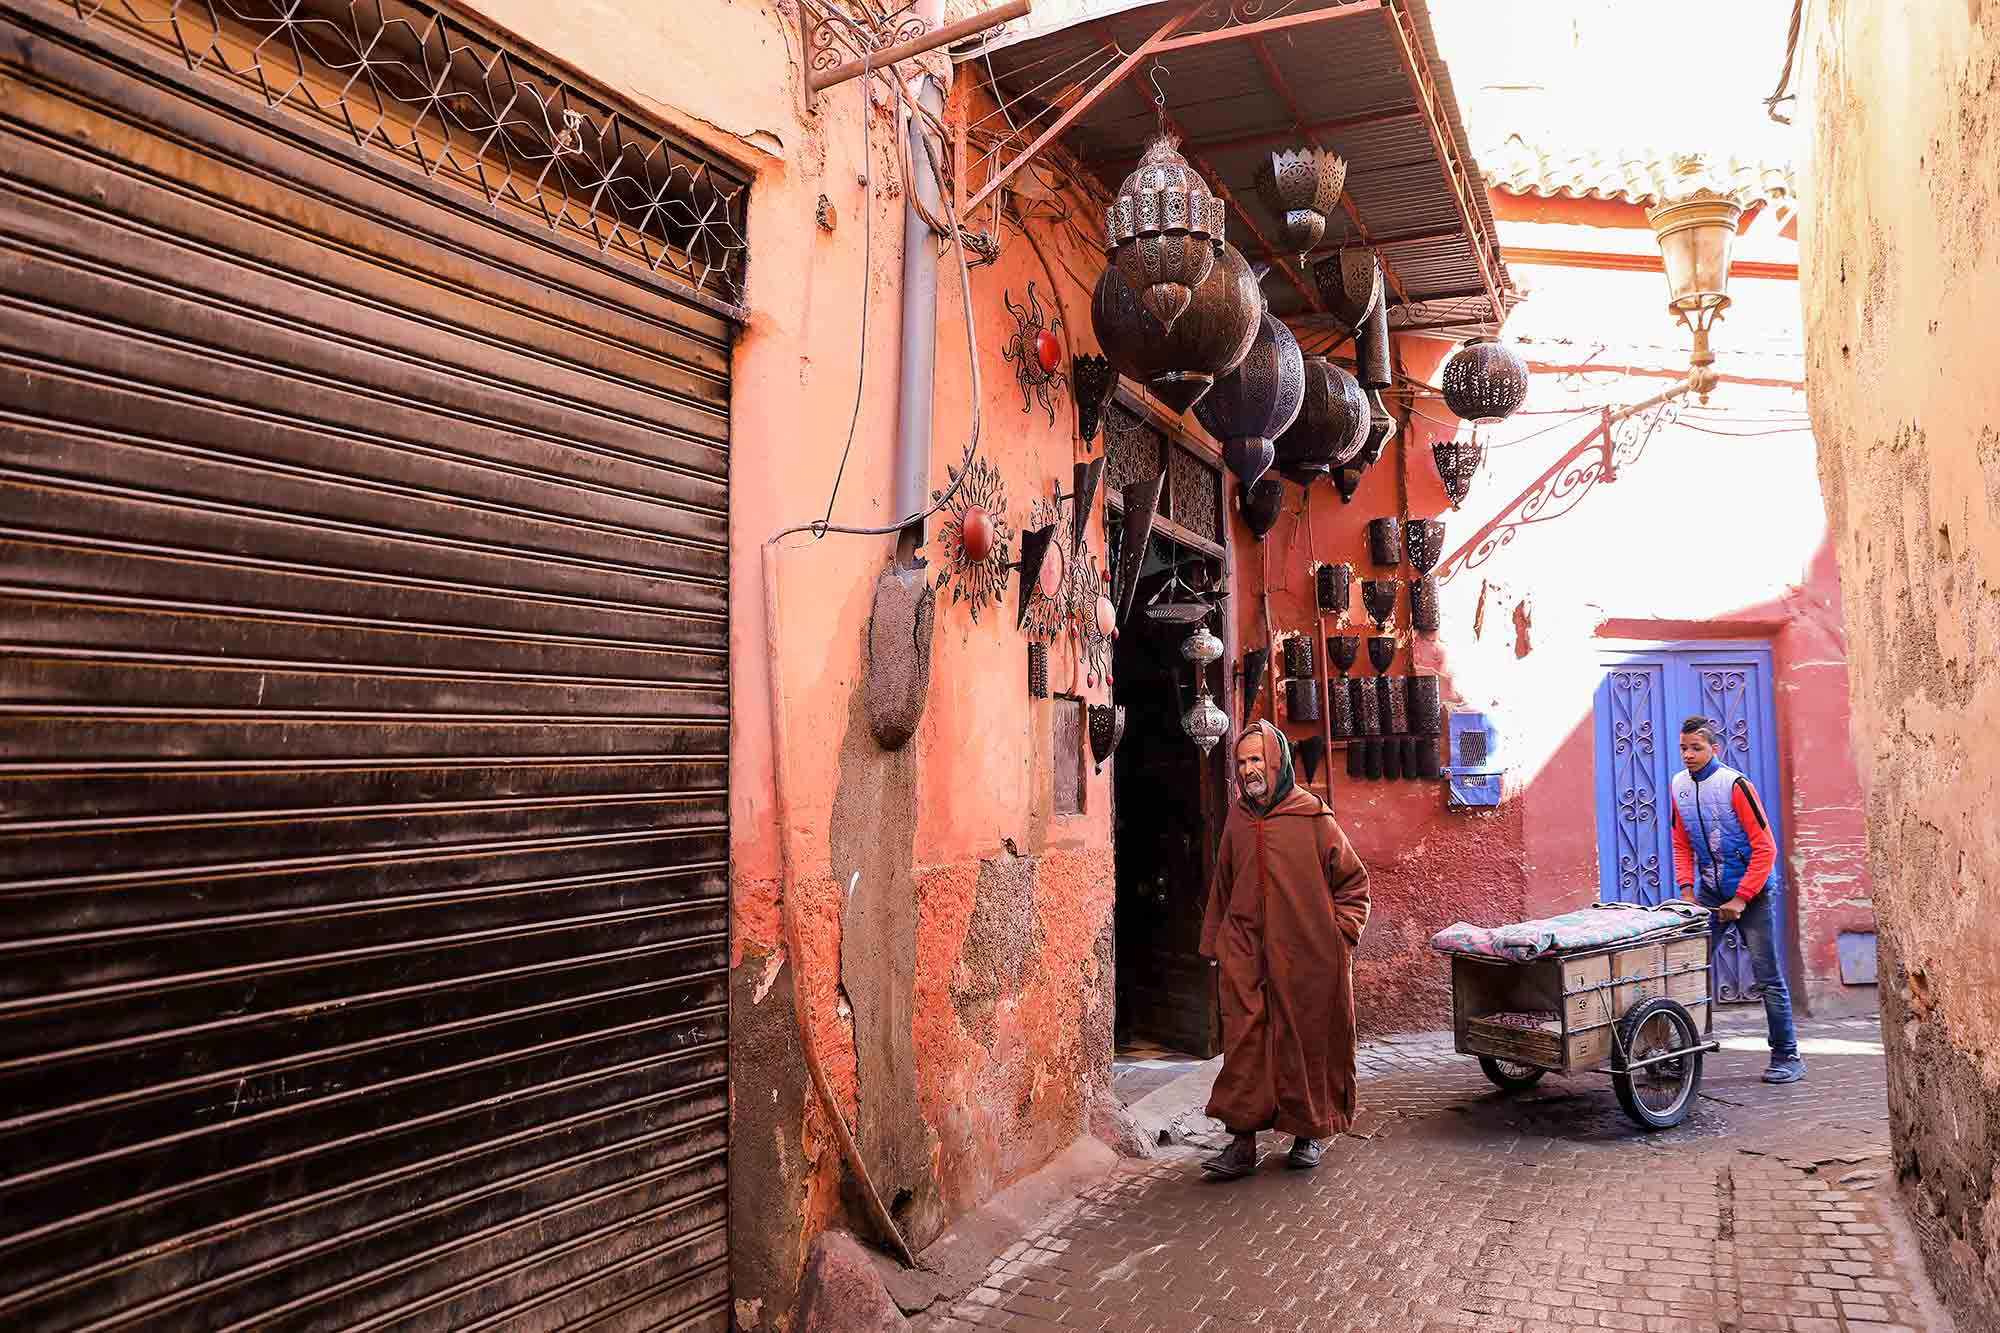 One of the favourite things to do in Marrakech is to stroll through the ancient medina and the souks that are like a maze hoping to get lost for a while before finding your way home again. © ULLI MAIER & NISA MAIER